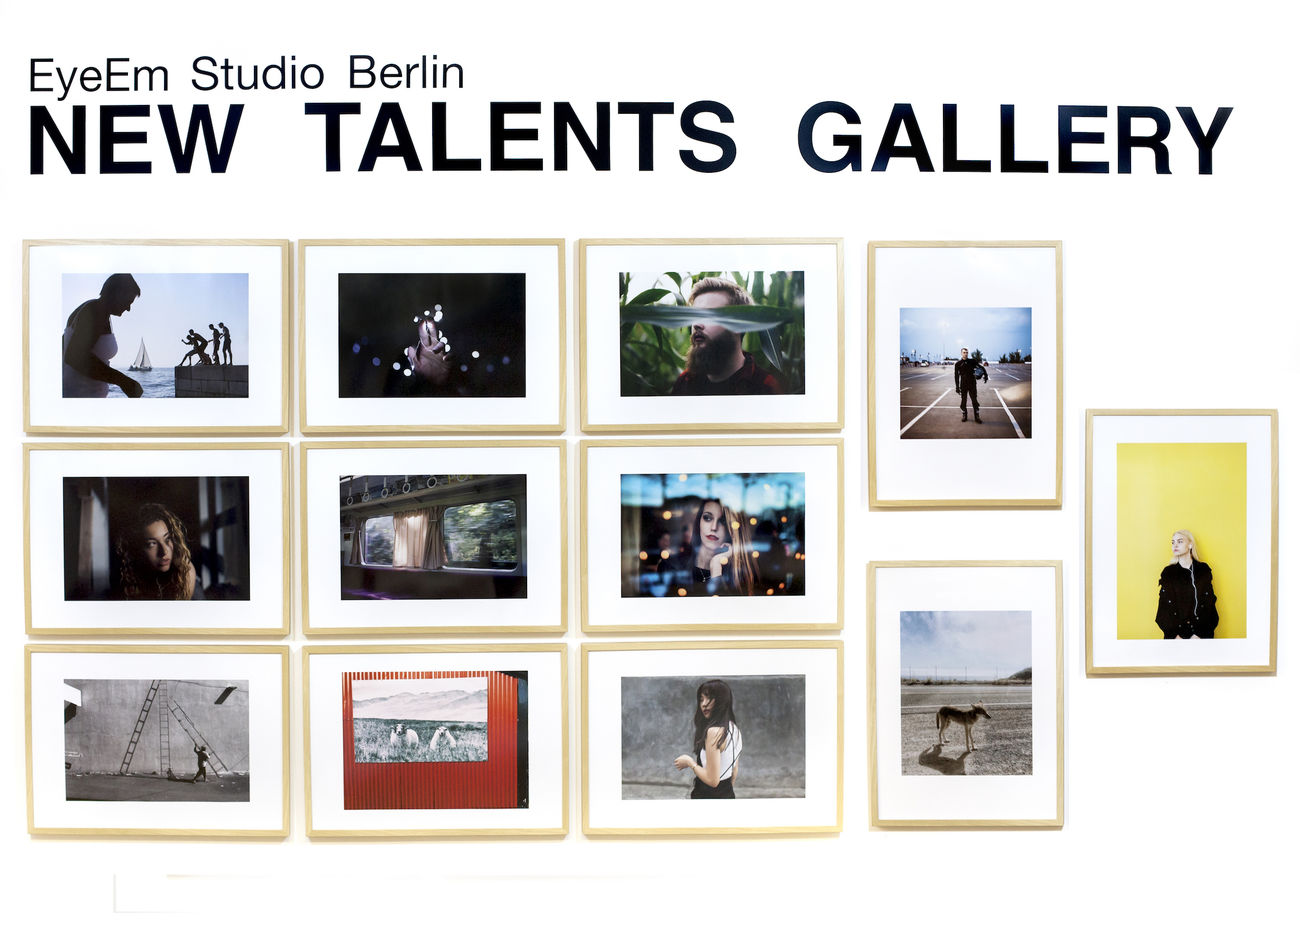 Don't miss the newest talents on EyeEm whose work is now featured in EyeEm HQ in Berlin! https://www.eyeem.com/blog/2016/12/the-new-talents-gallery-november-2016/